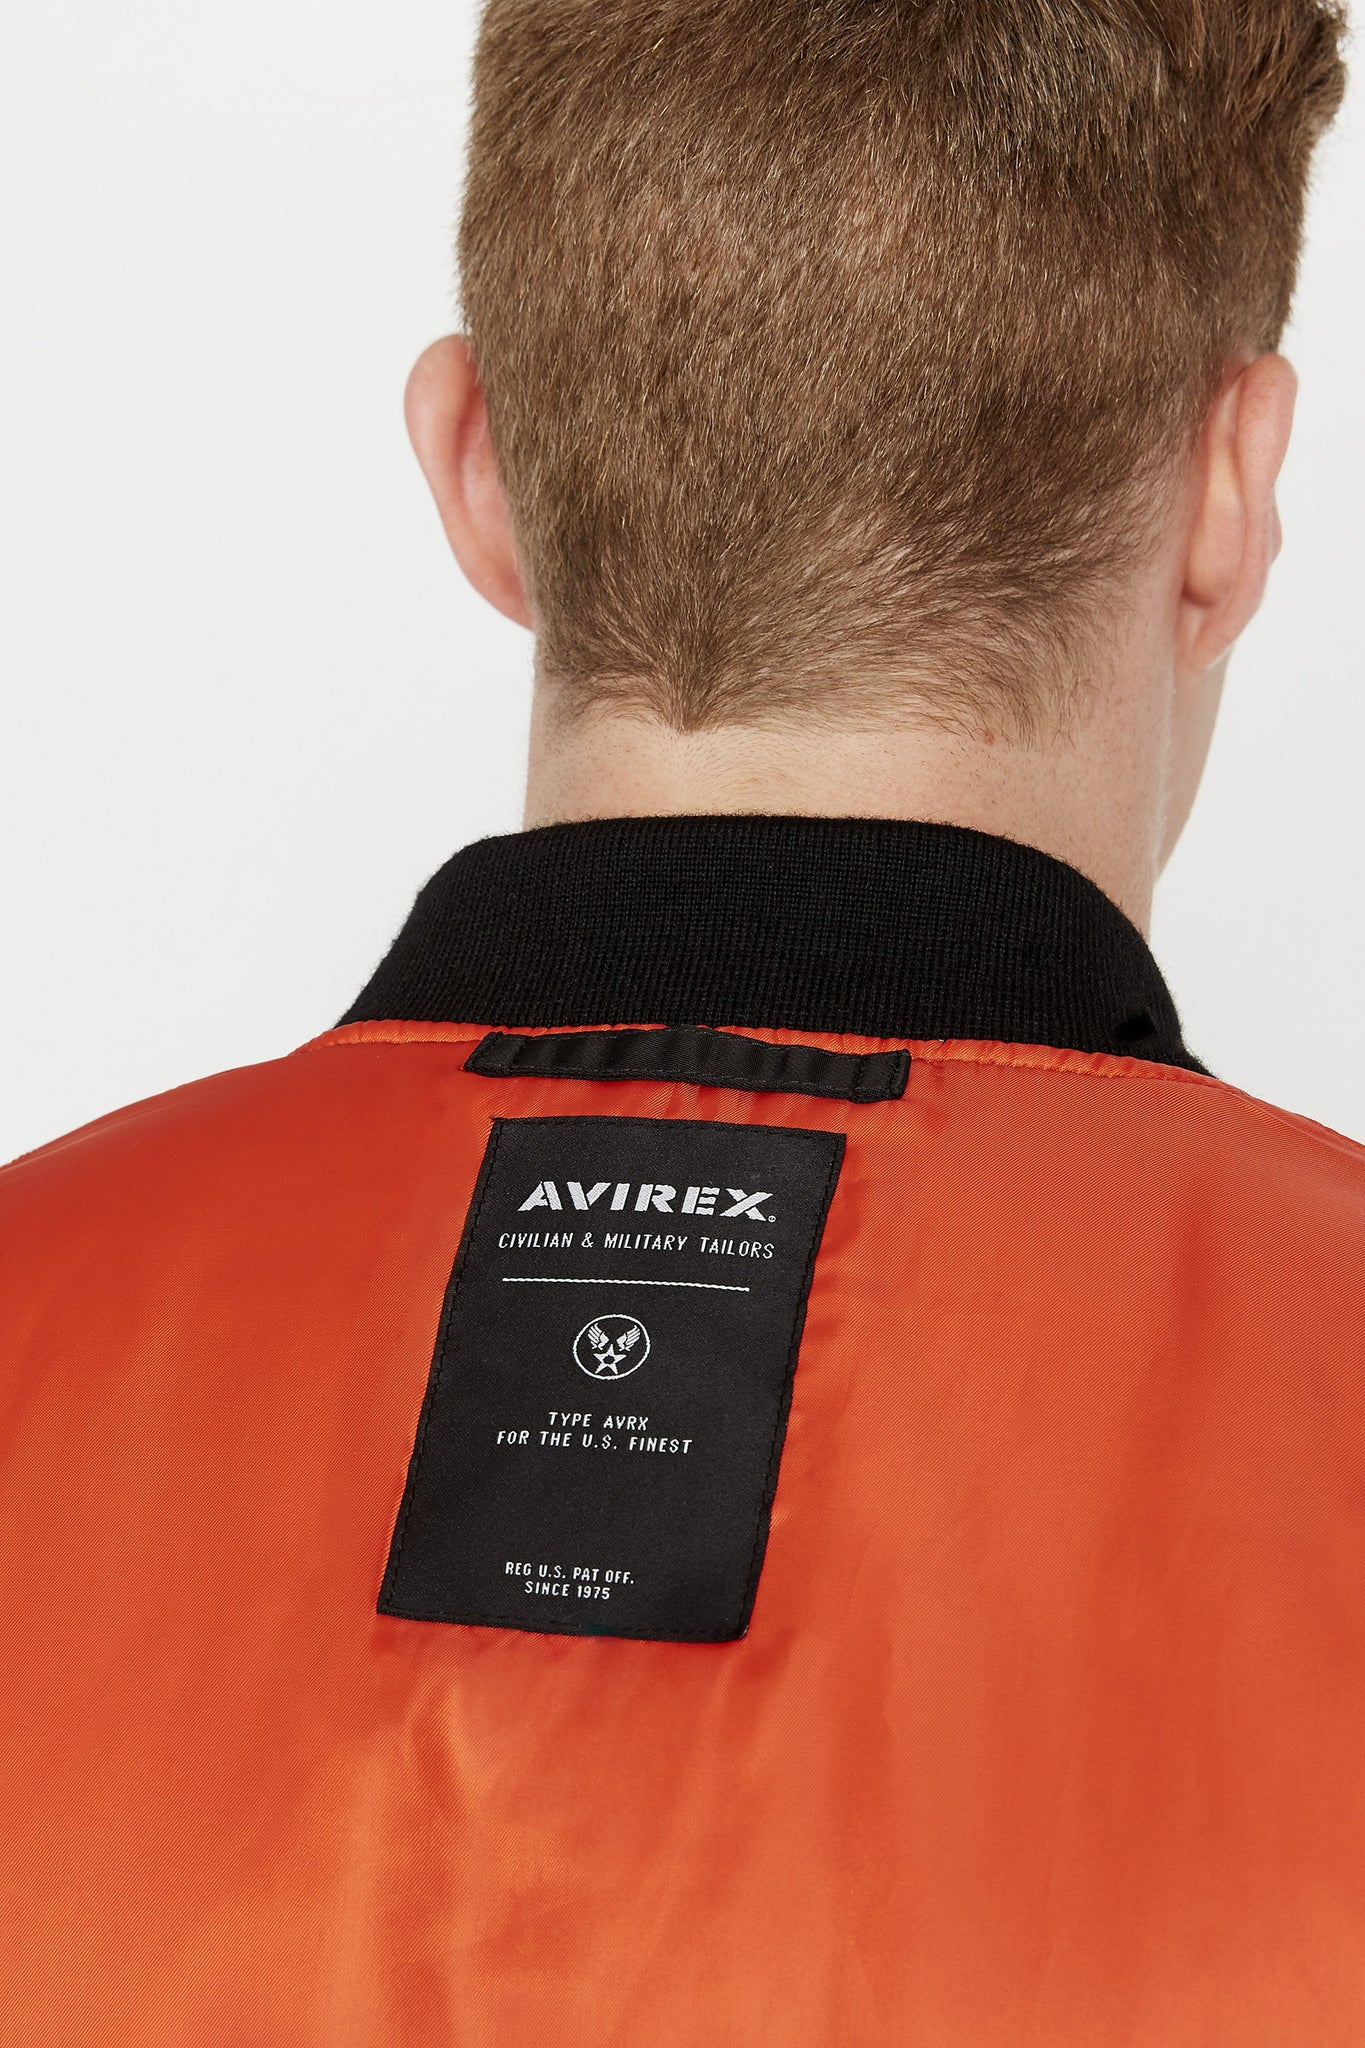 Detailed view of back patch under collar of reversed orange side